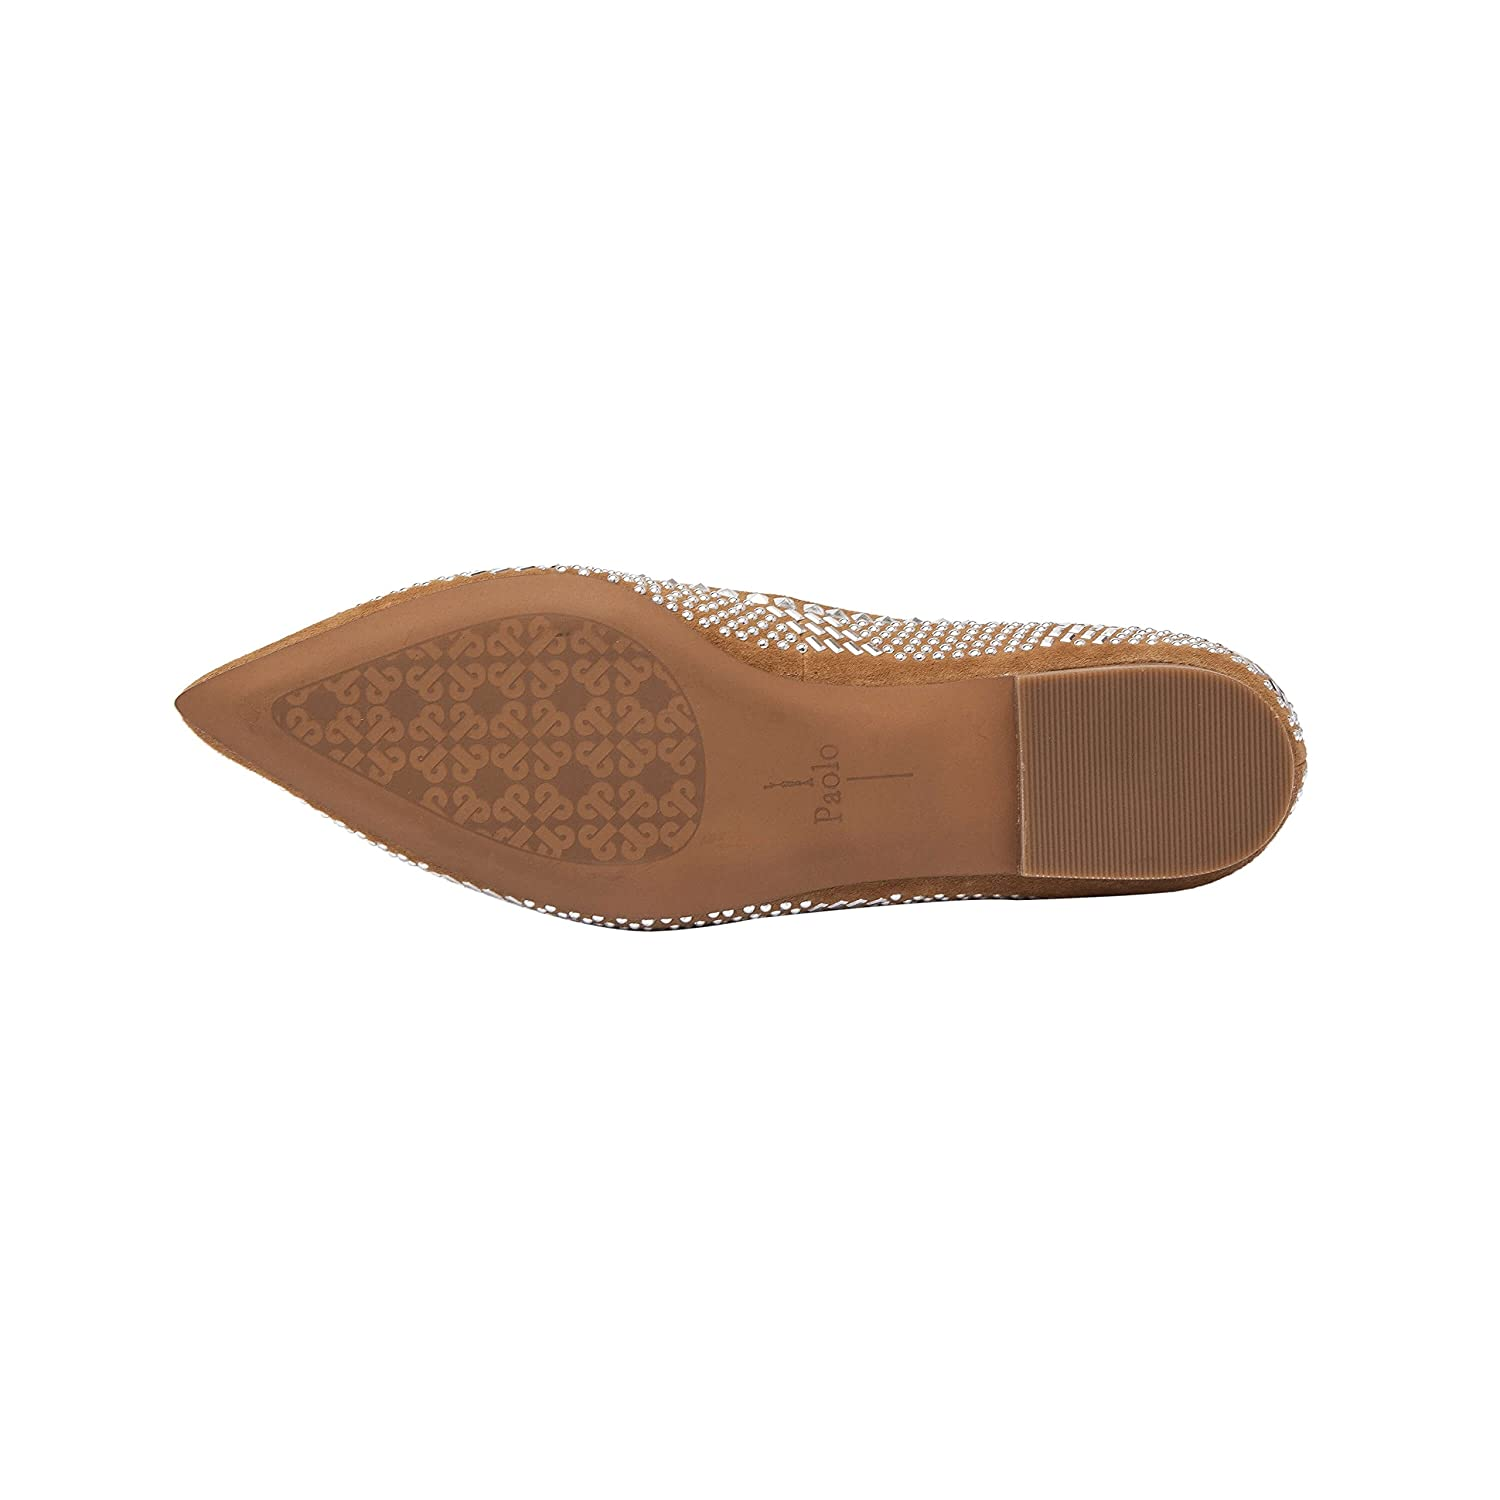 Linea Paolo Portia | Stud Adorned Suede Slip-On Moc Slipper B07DMBJN9Y Comfortable Flat (New Fall) B07DMBJN9Y Slipper 6.5 M US|Toffee Suede 4d77f3